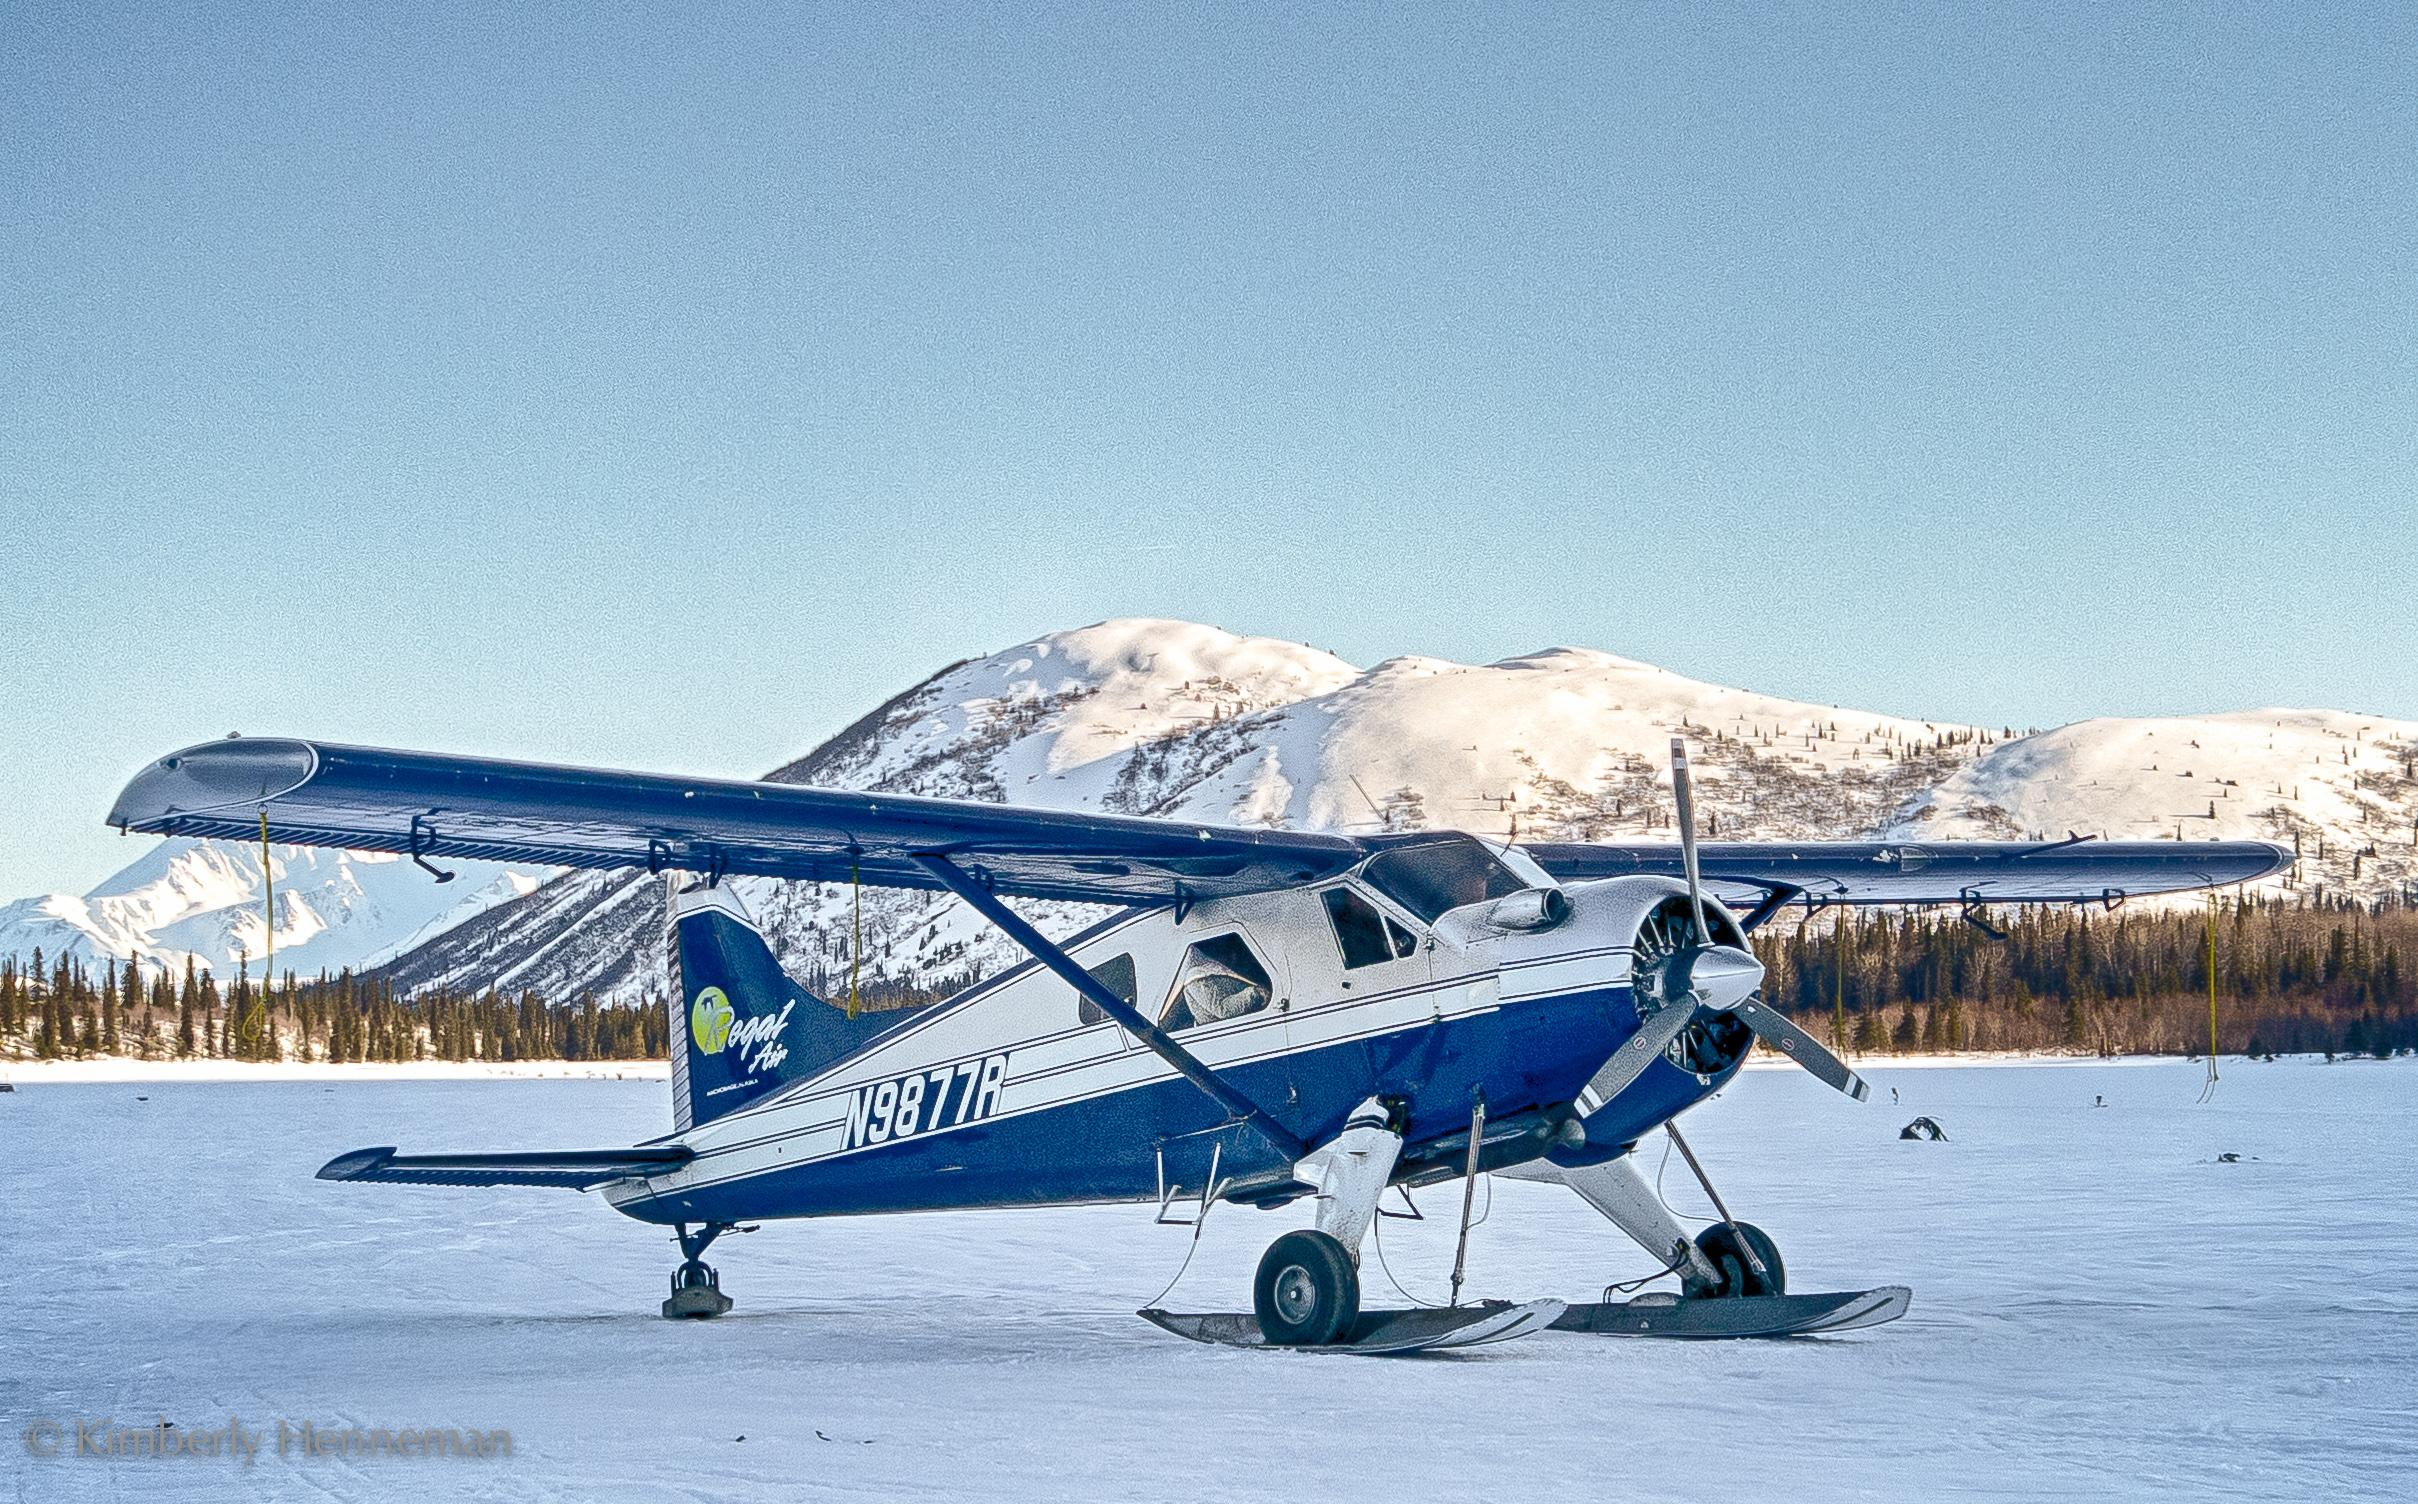 Iditarod Race First Hand: Dogs, Airplanes and 1,000 Miles